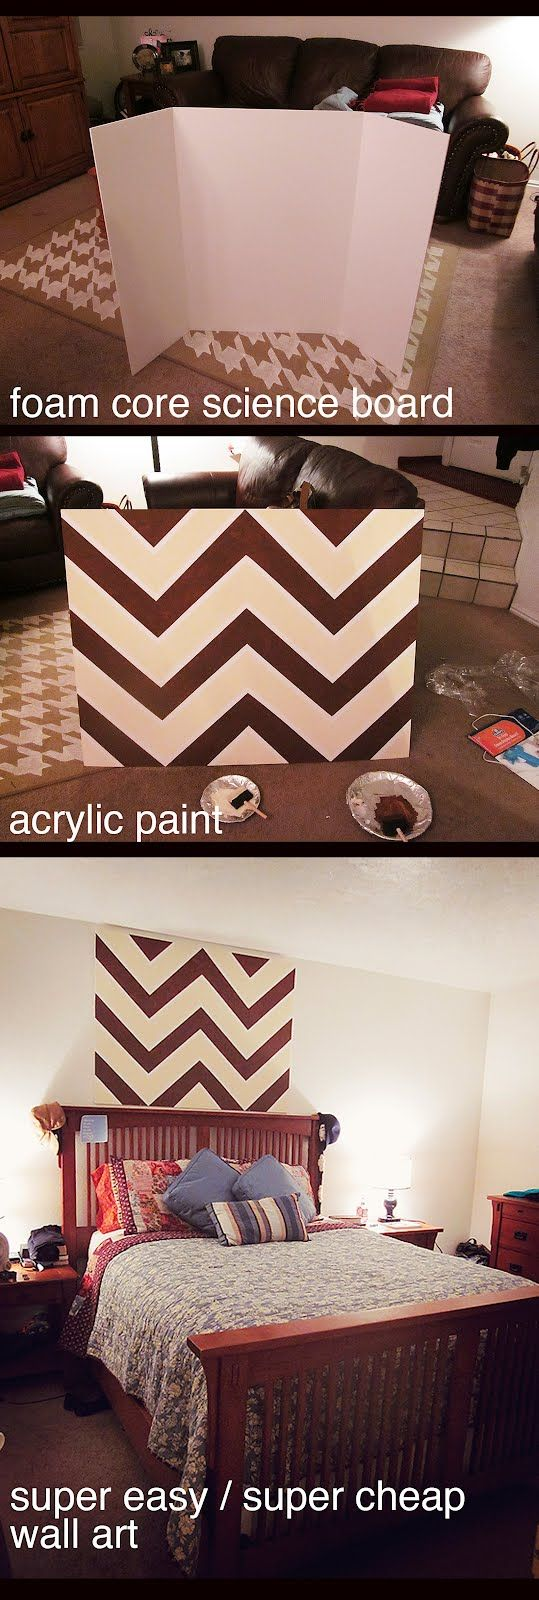 Apartment Decorating Crafts 148 best $100 budget apartment design images on pinterest | diy